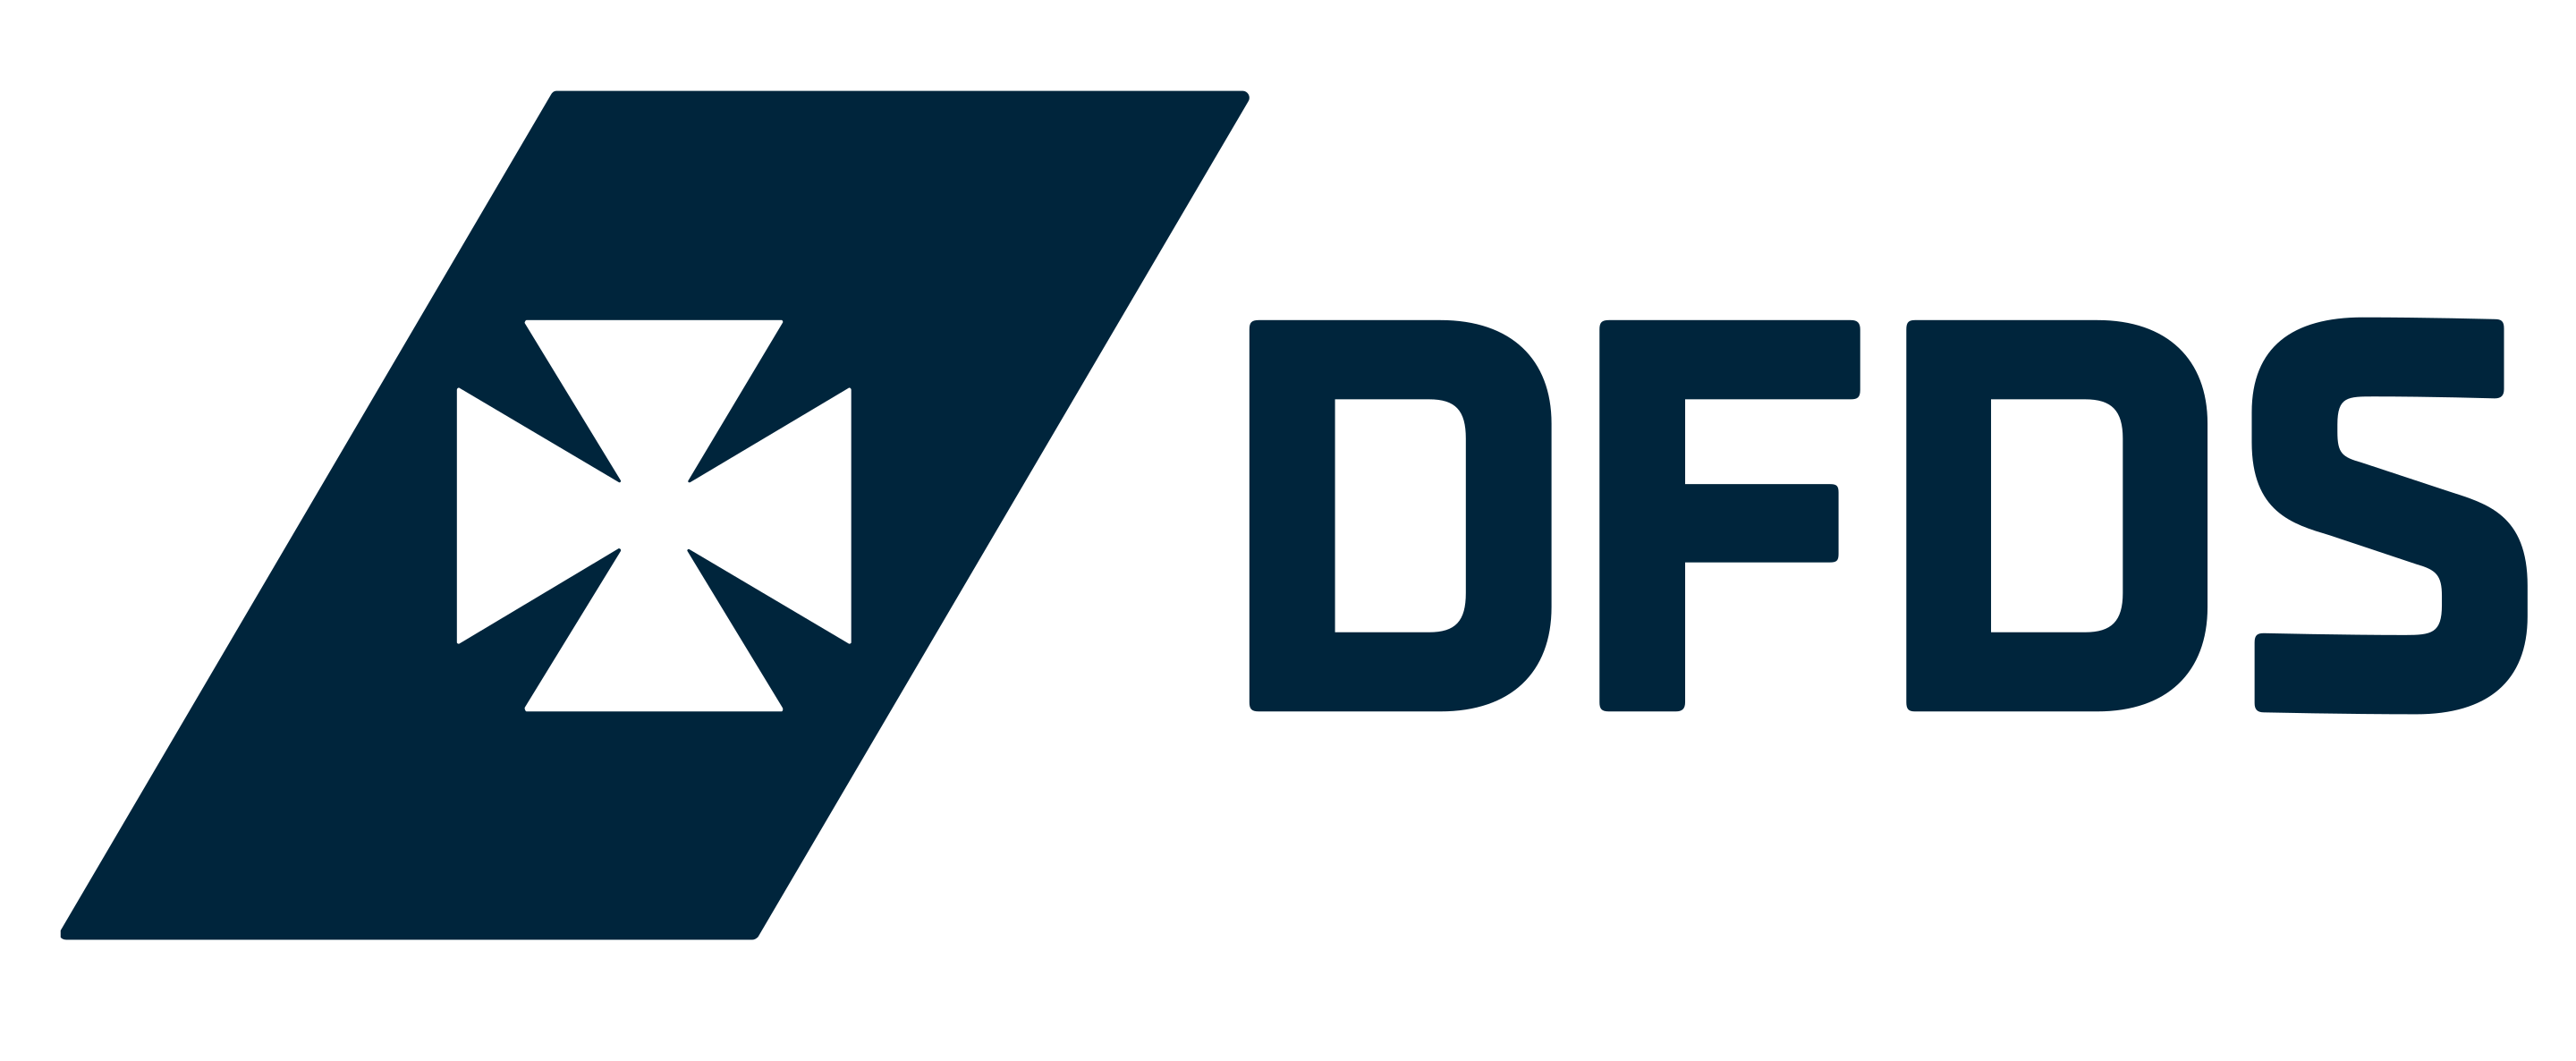 DFDS logotips